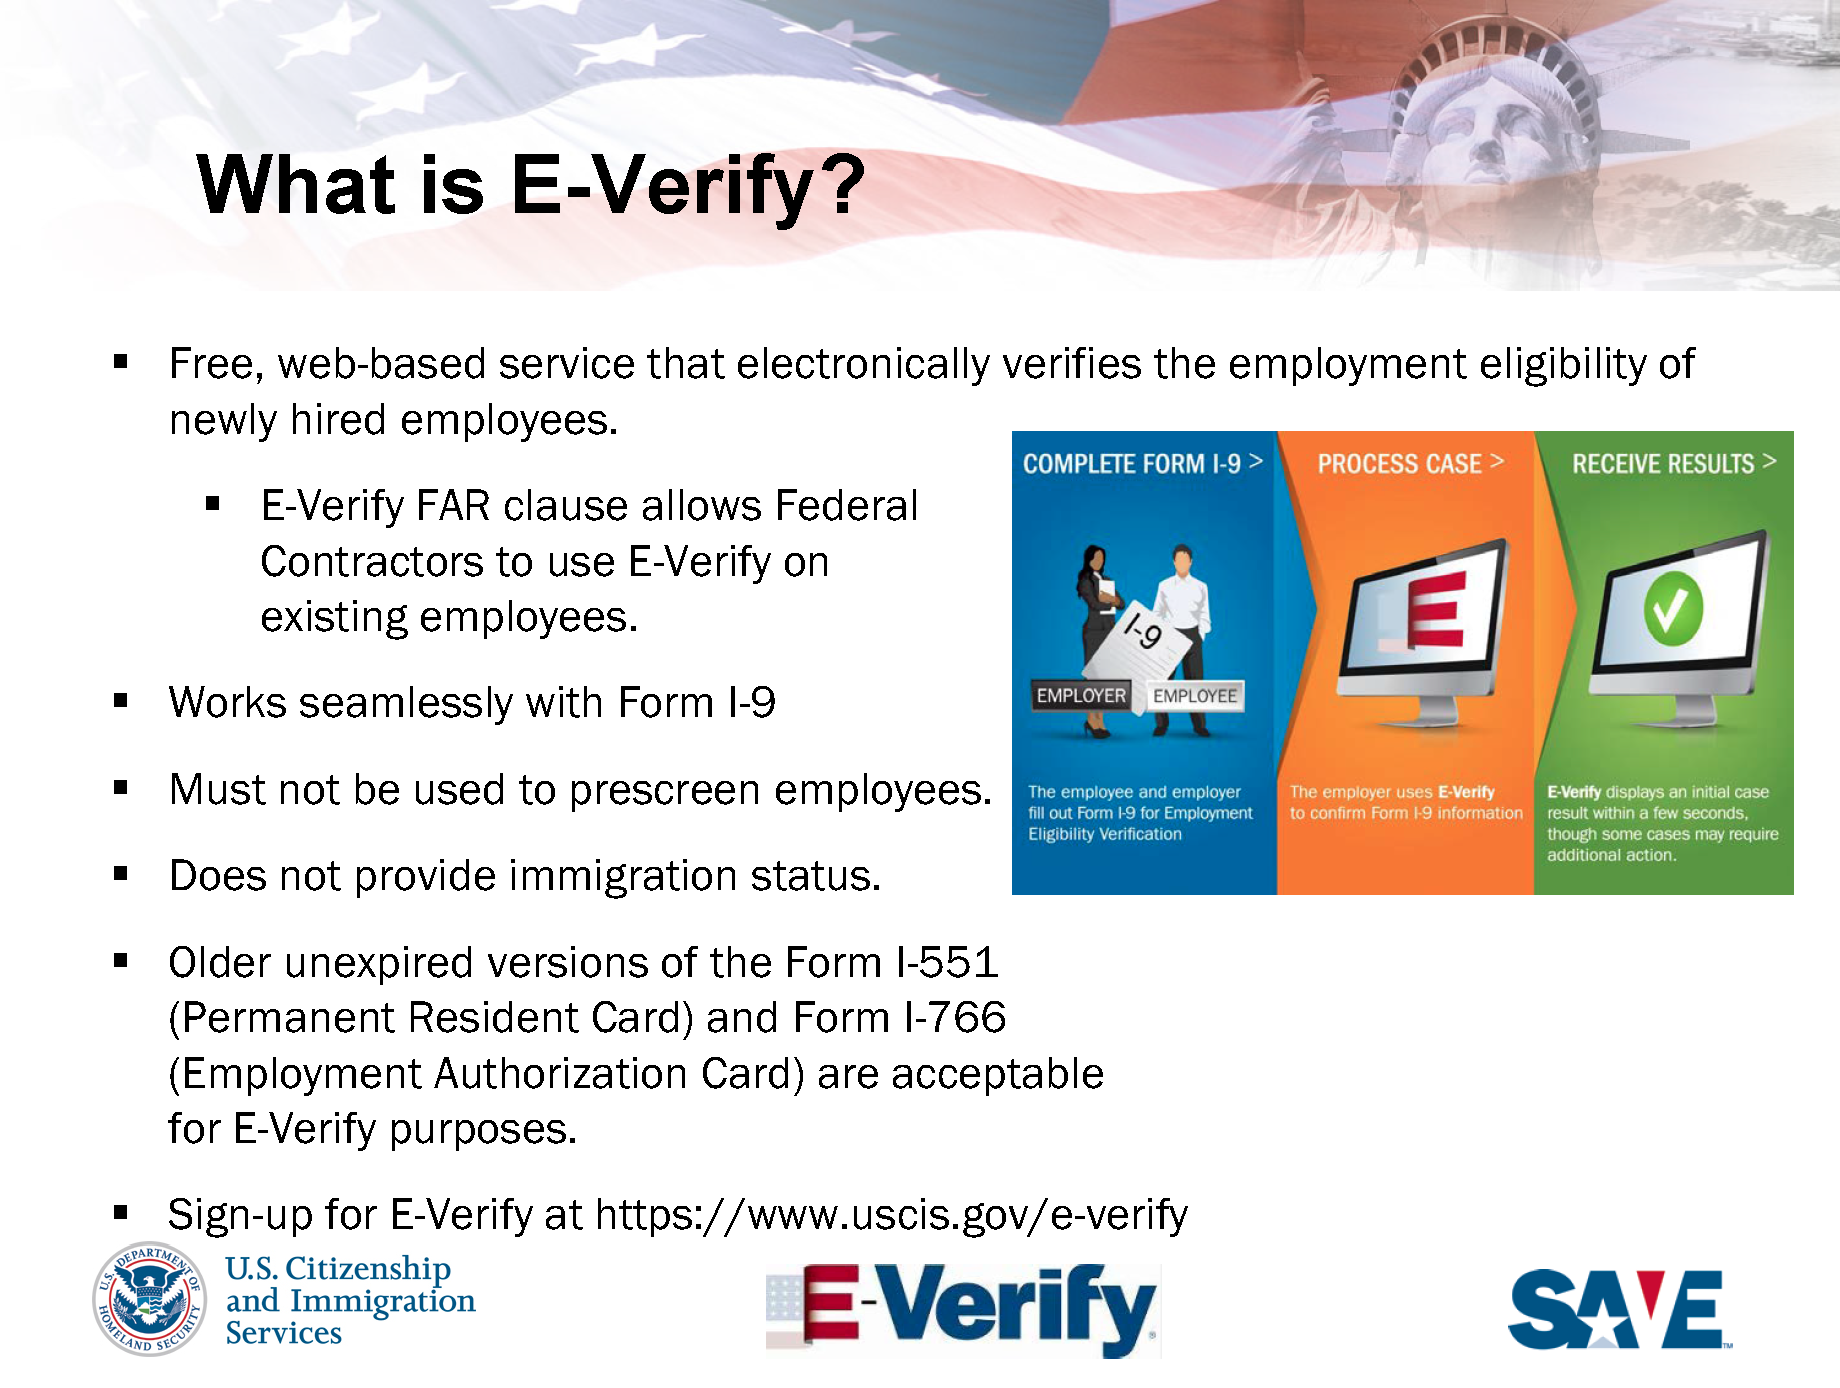 PED_-_redesigned_green_card_and_EAD_webinar_5-8-17_Page_09.png